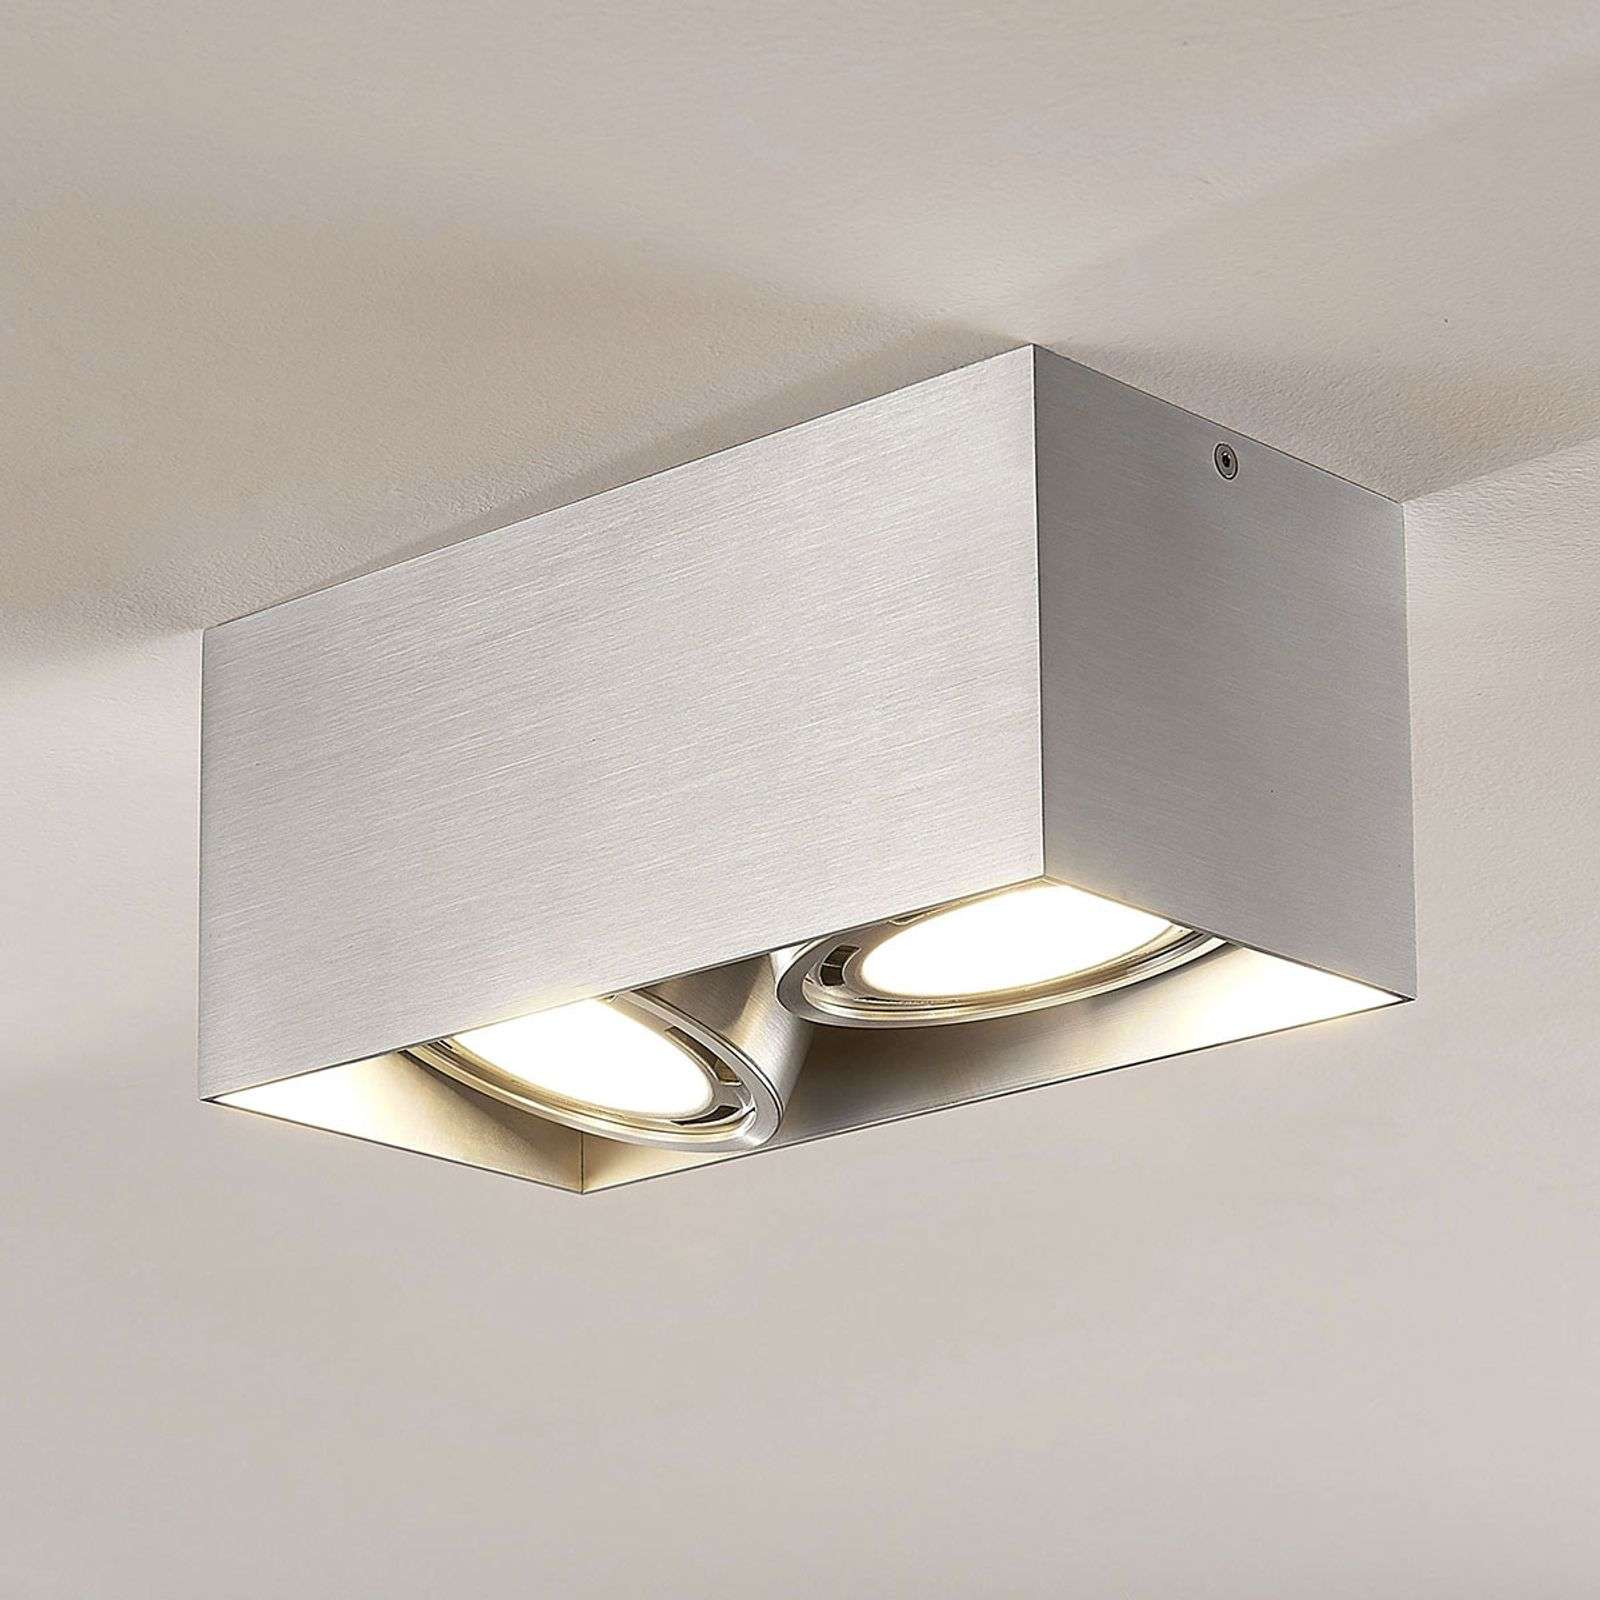 LED downlight Rosalie, 2-lamps, hoekig, alu